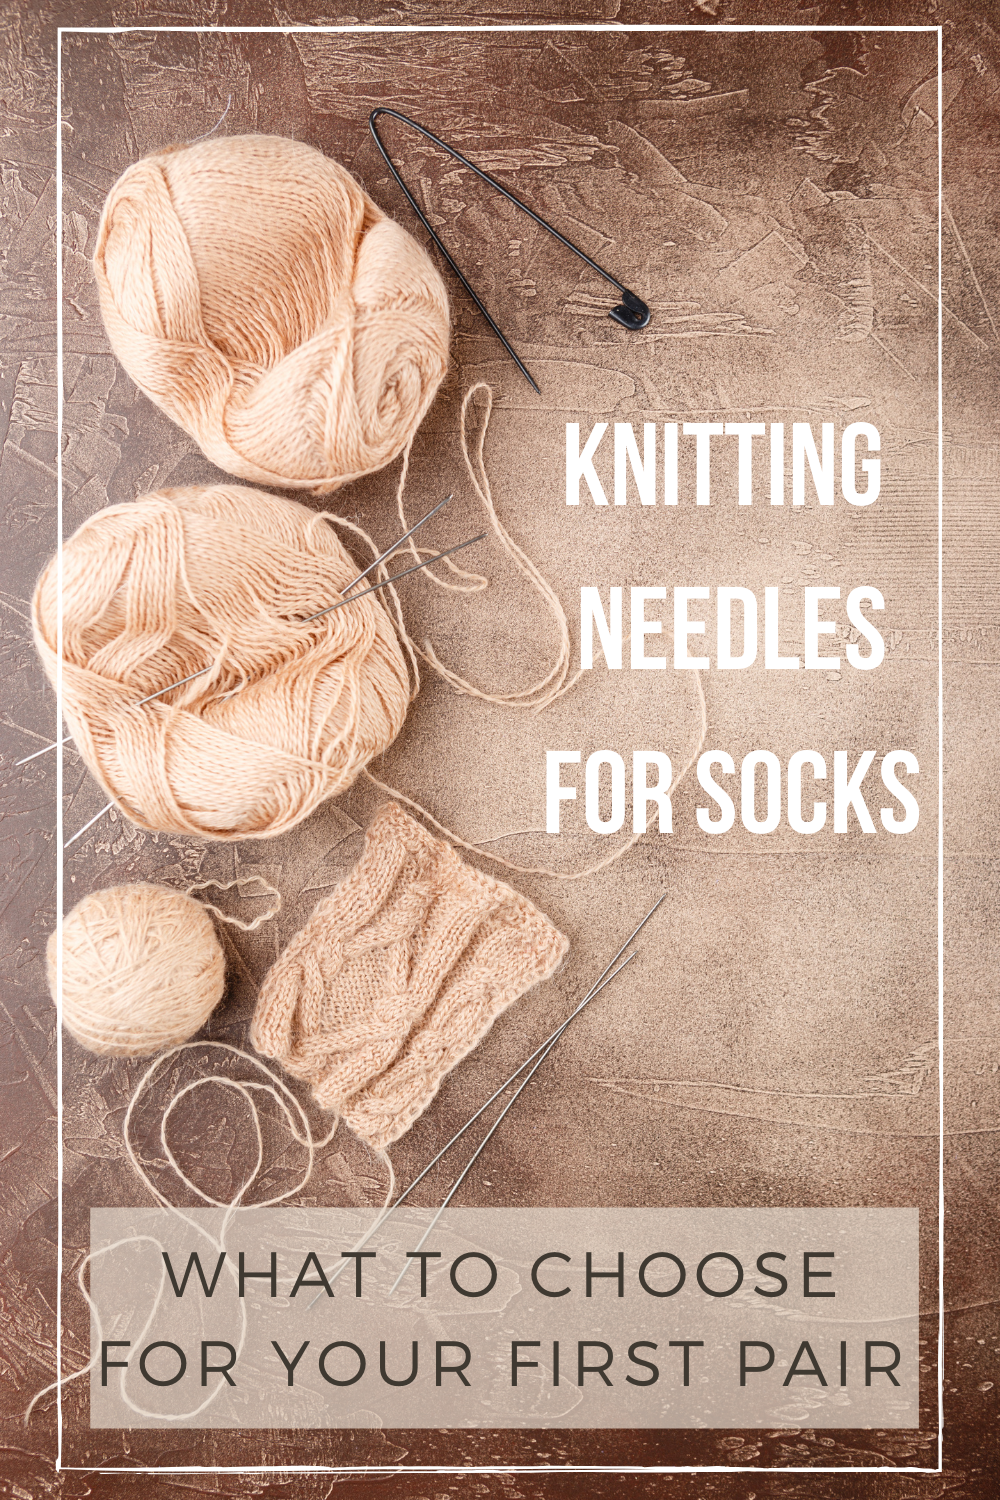 Knitting needles for socks - which should you pick for your first pair?